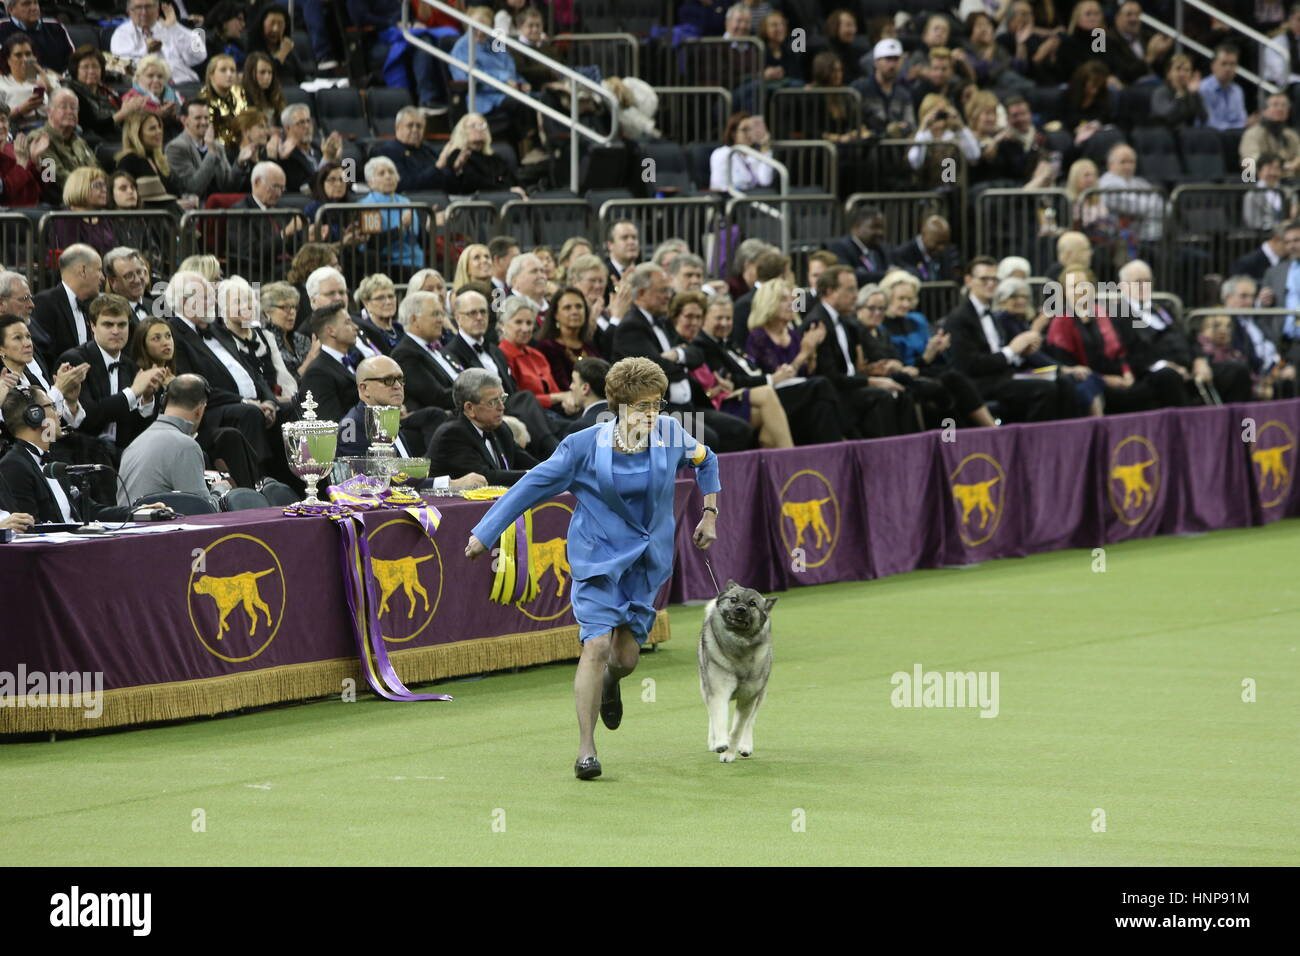 New York City, USA. 15th Feb, 2017. The 141st Westminster Kennel Club's annual Best In Show competition concluded Stock Photo